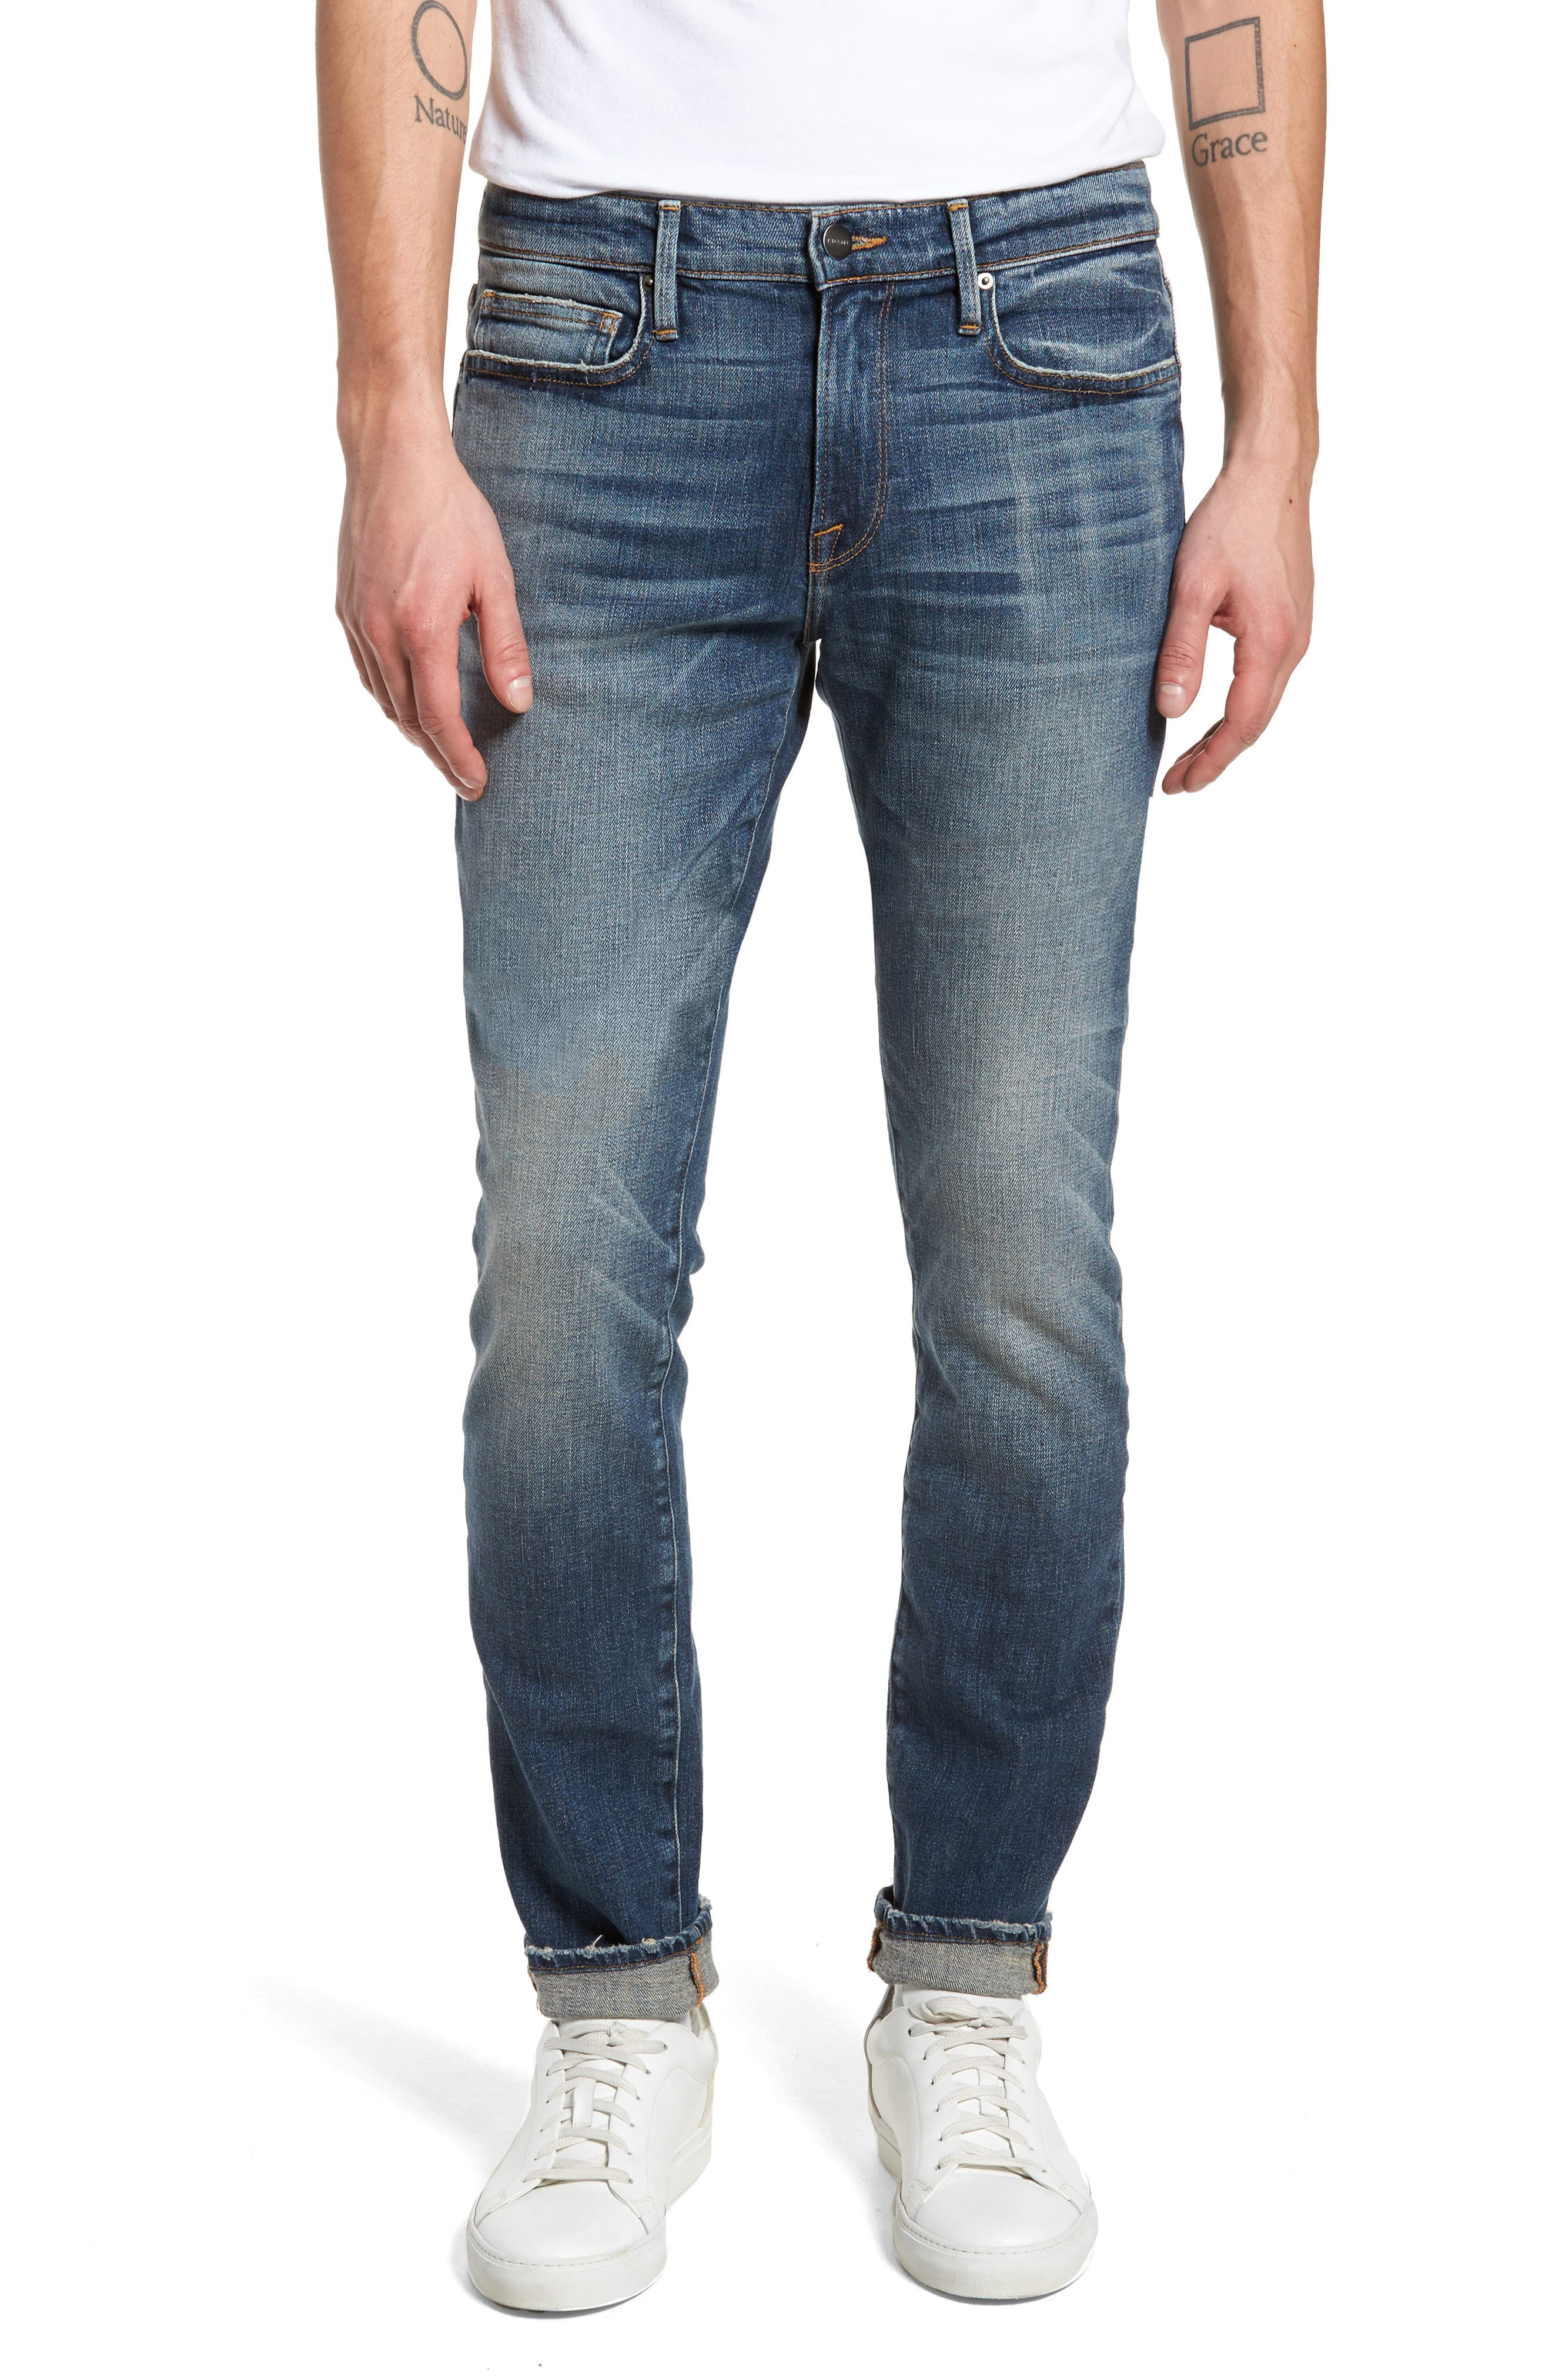 L'Homme Skinny Fit Jeans,                             Main thumbnail 1, color,                             405